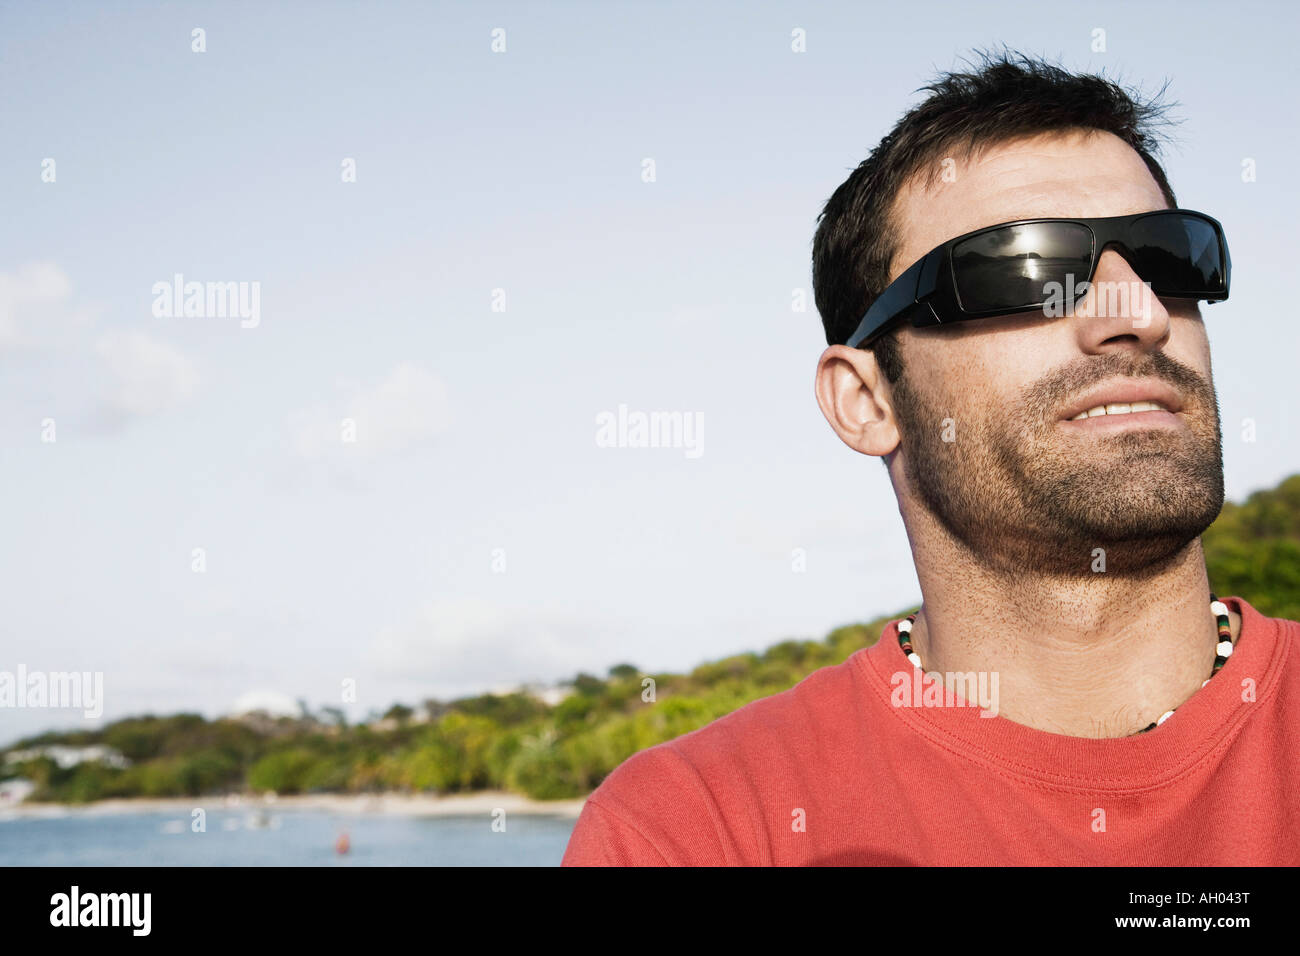 5665d2cadc78 Close-up of a mid adult man wearing sunglasses Stock Photo: 14314091 ...